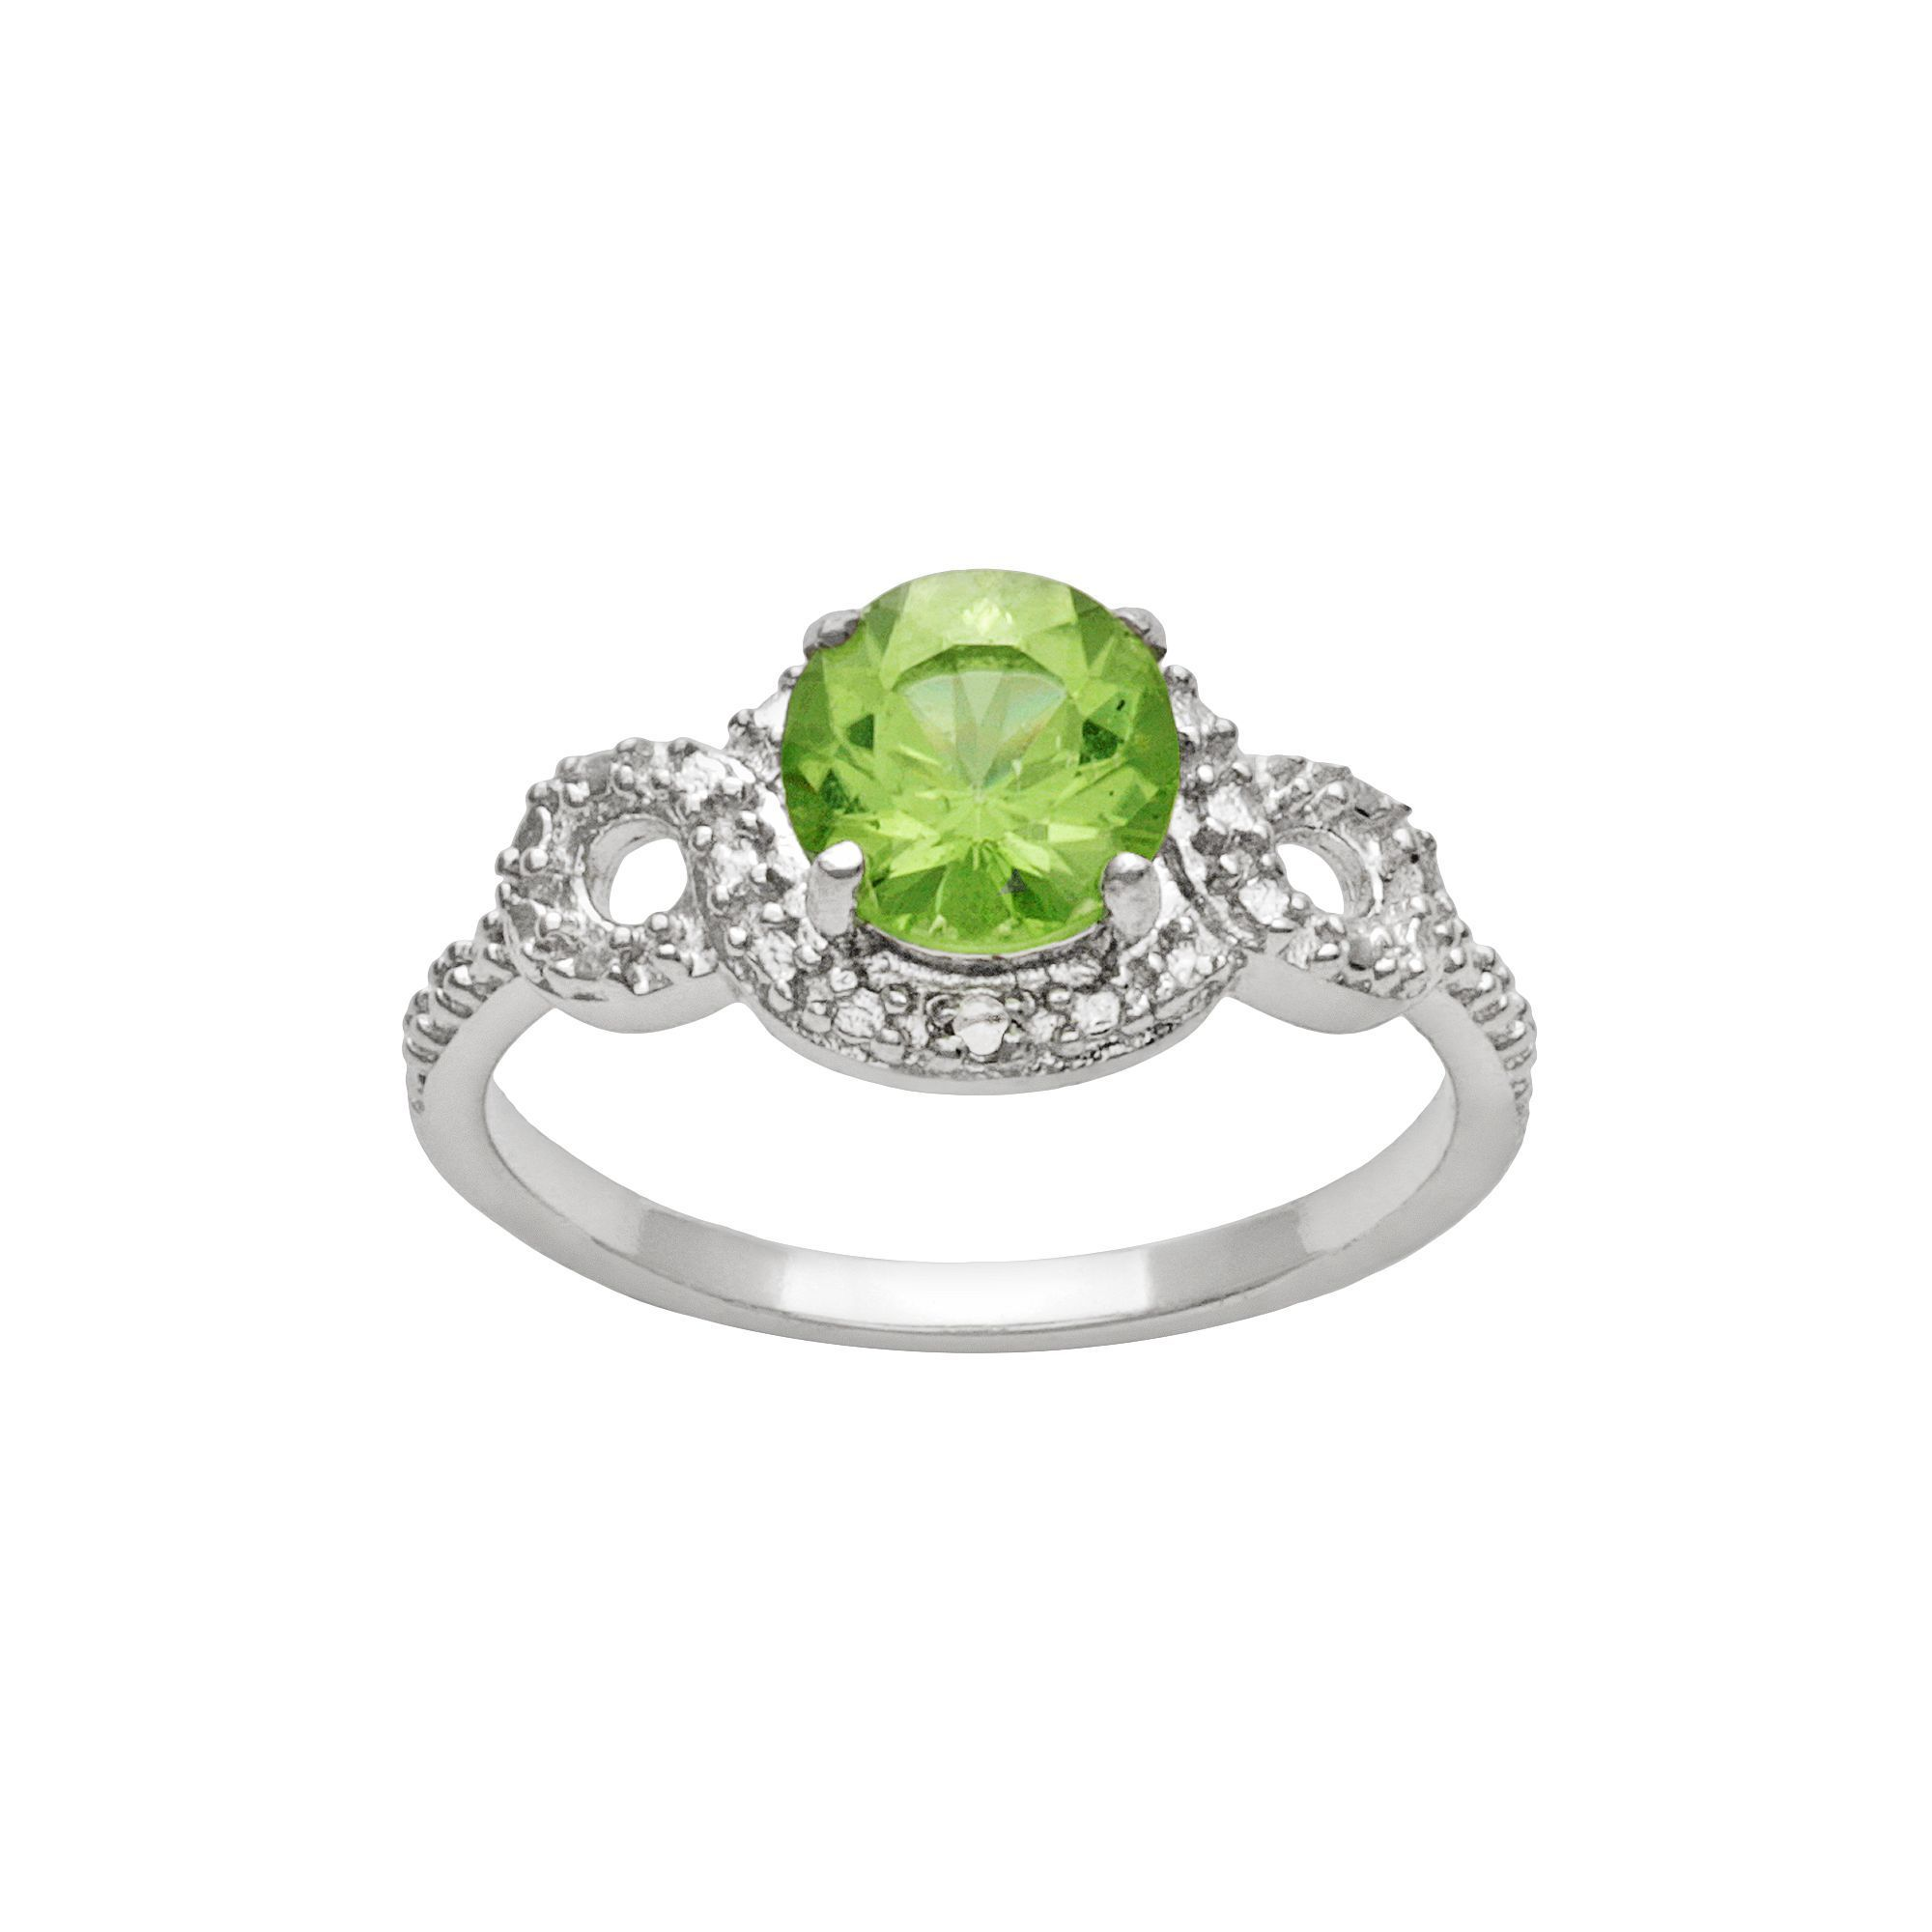 august best elegant of wedding rings birthstone peridot for